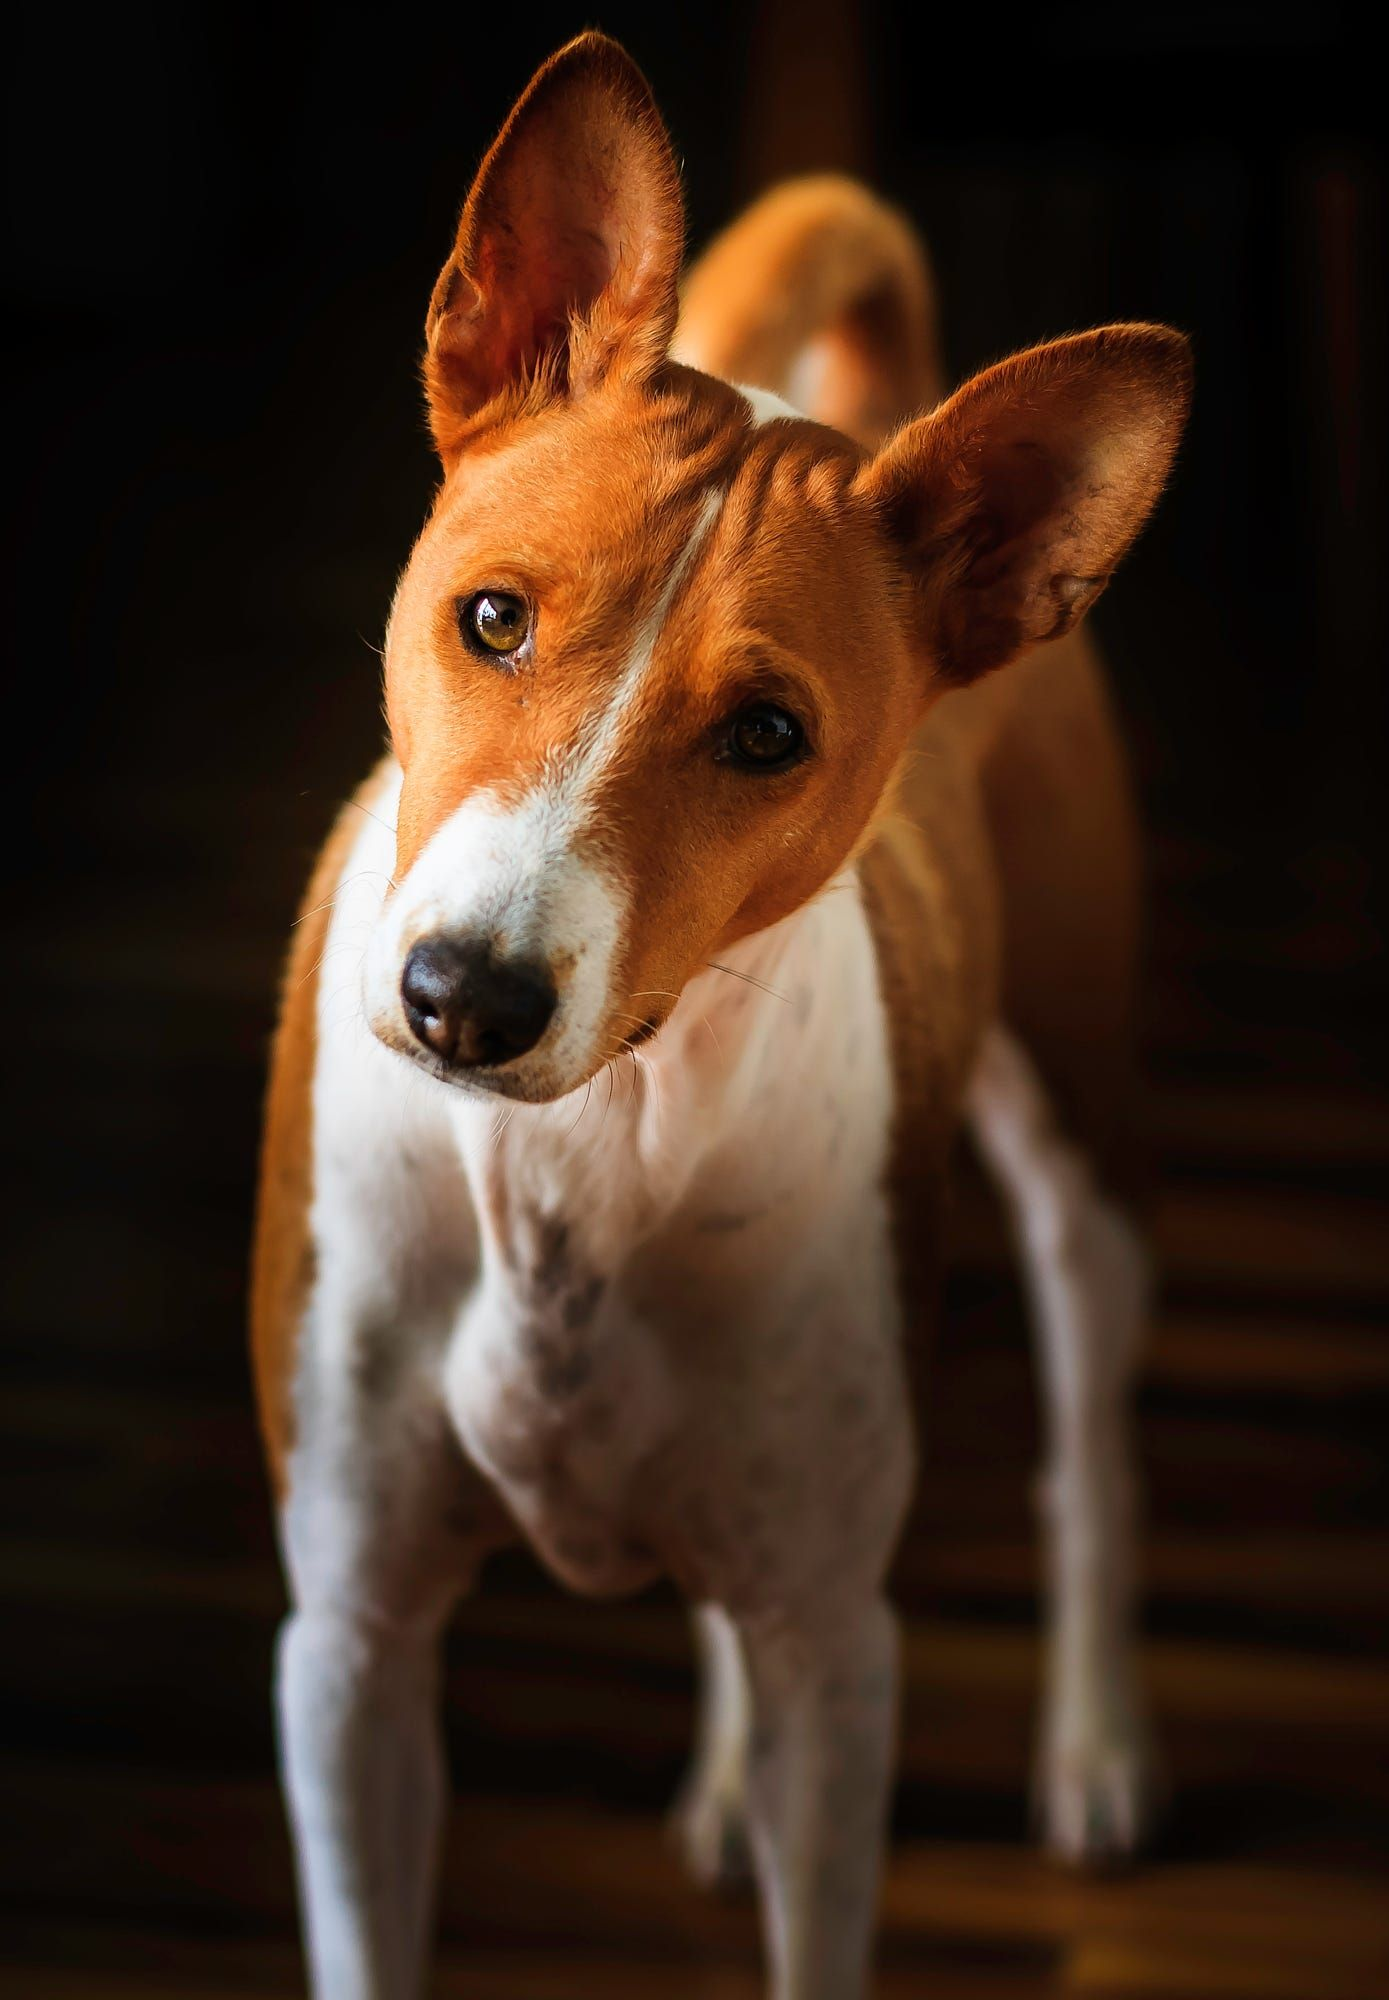 Our Basenji Turbo 6 Years Old Basenji Dogs Dogs